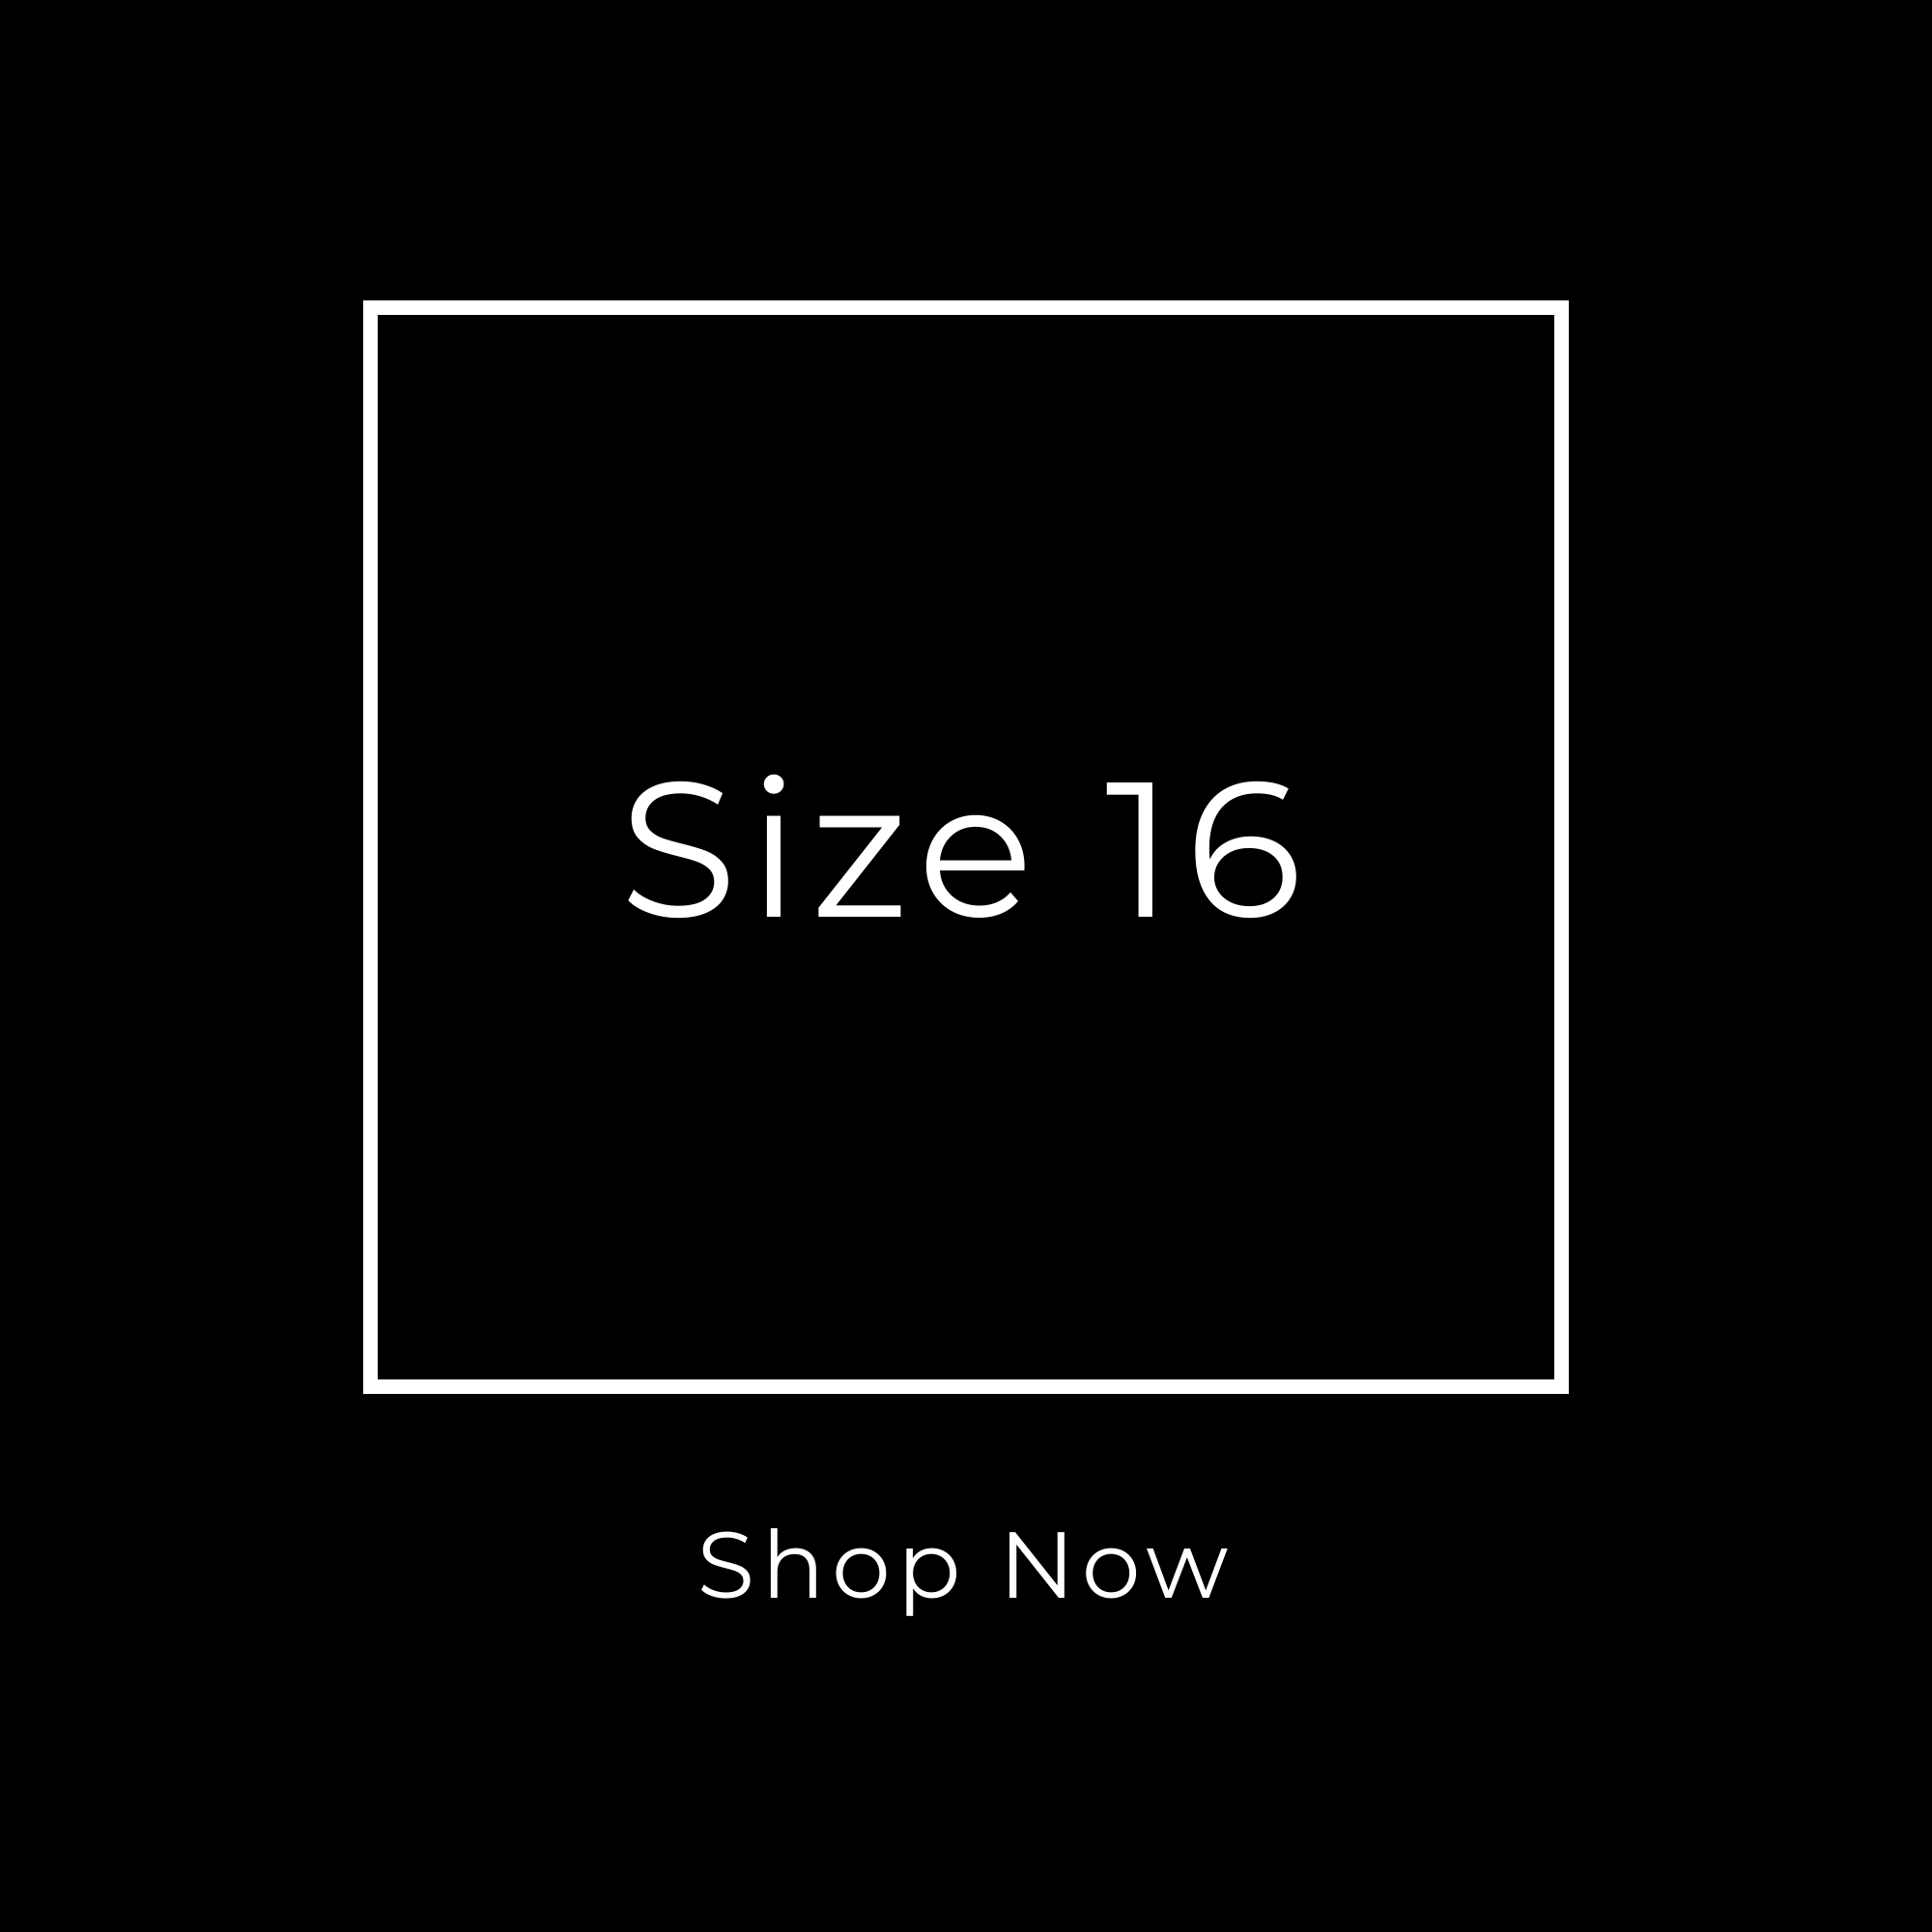 Size 16